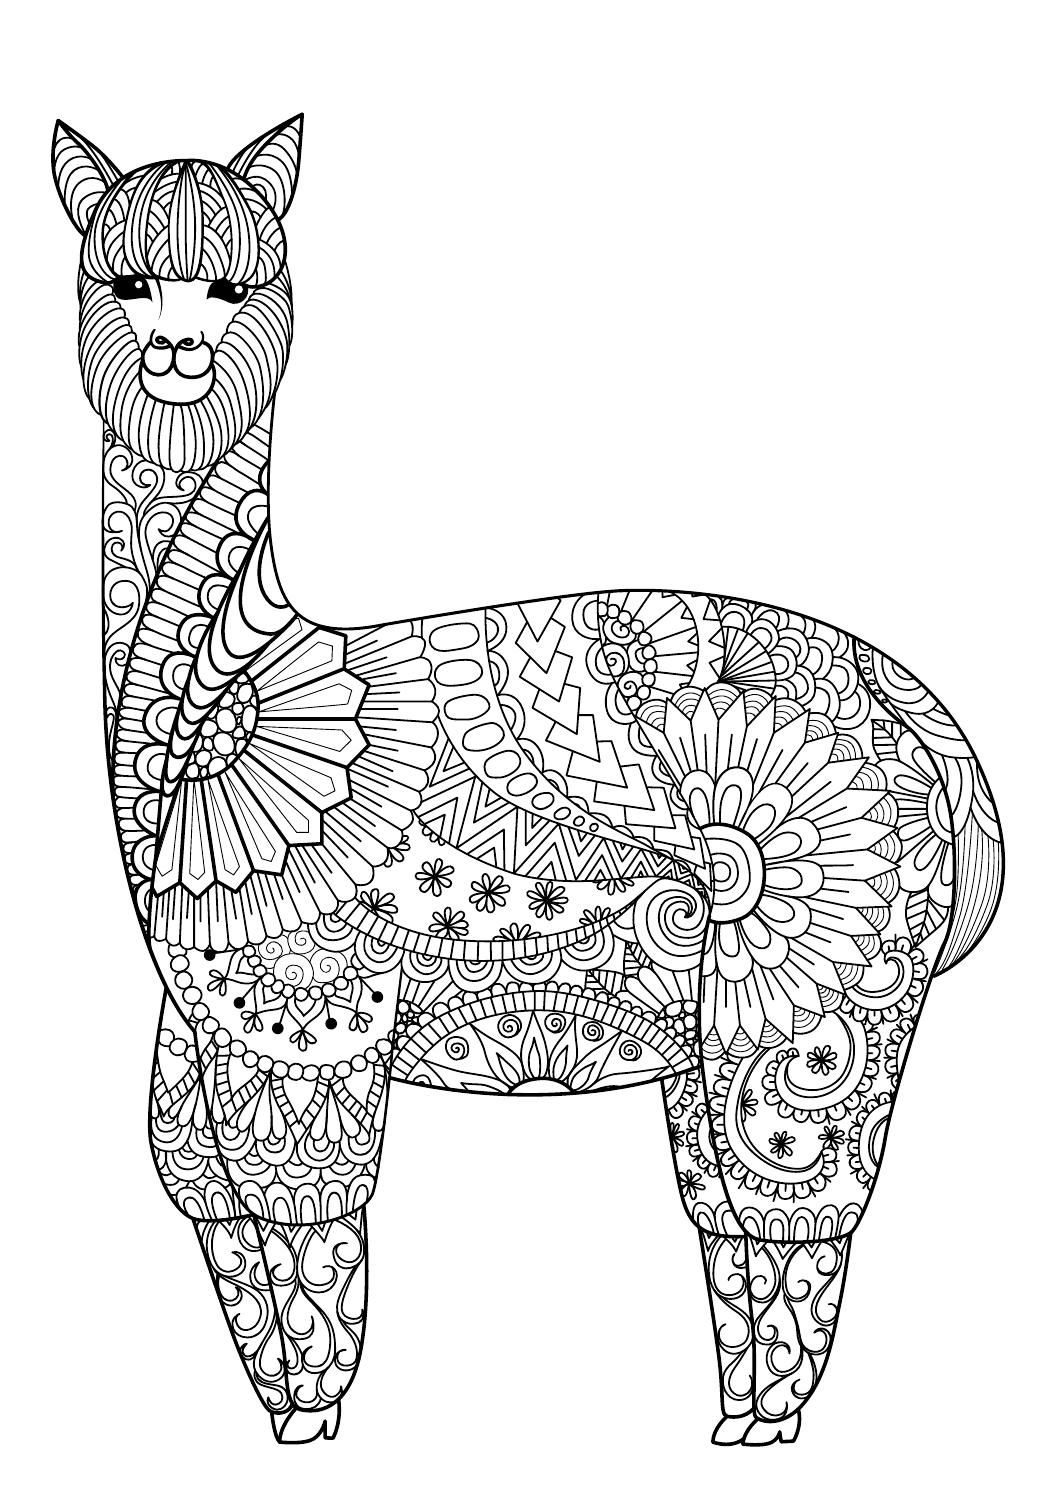 Colour Calm 10 Sampler Coloring Books Mandala Coloring Pages Animal Coloring Pages